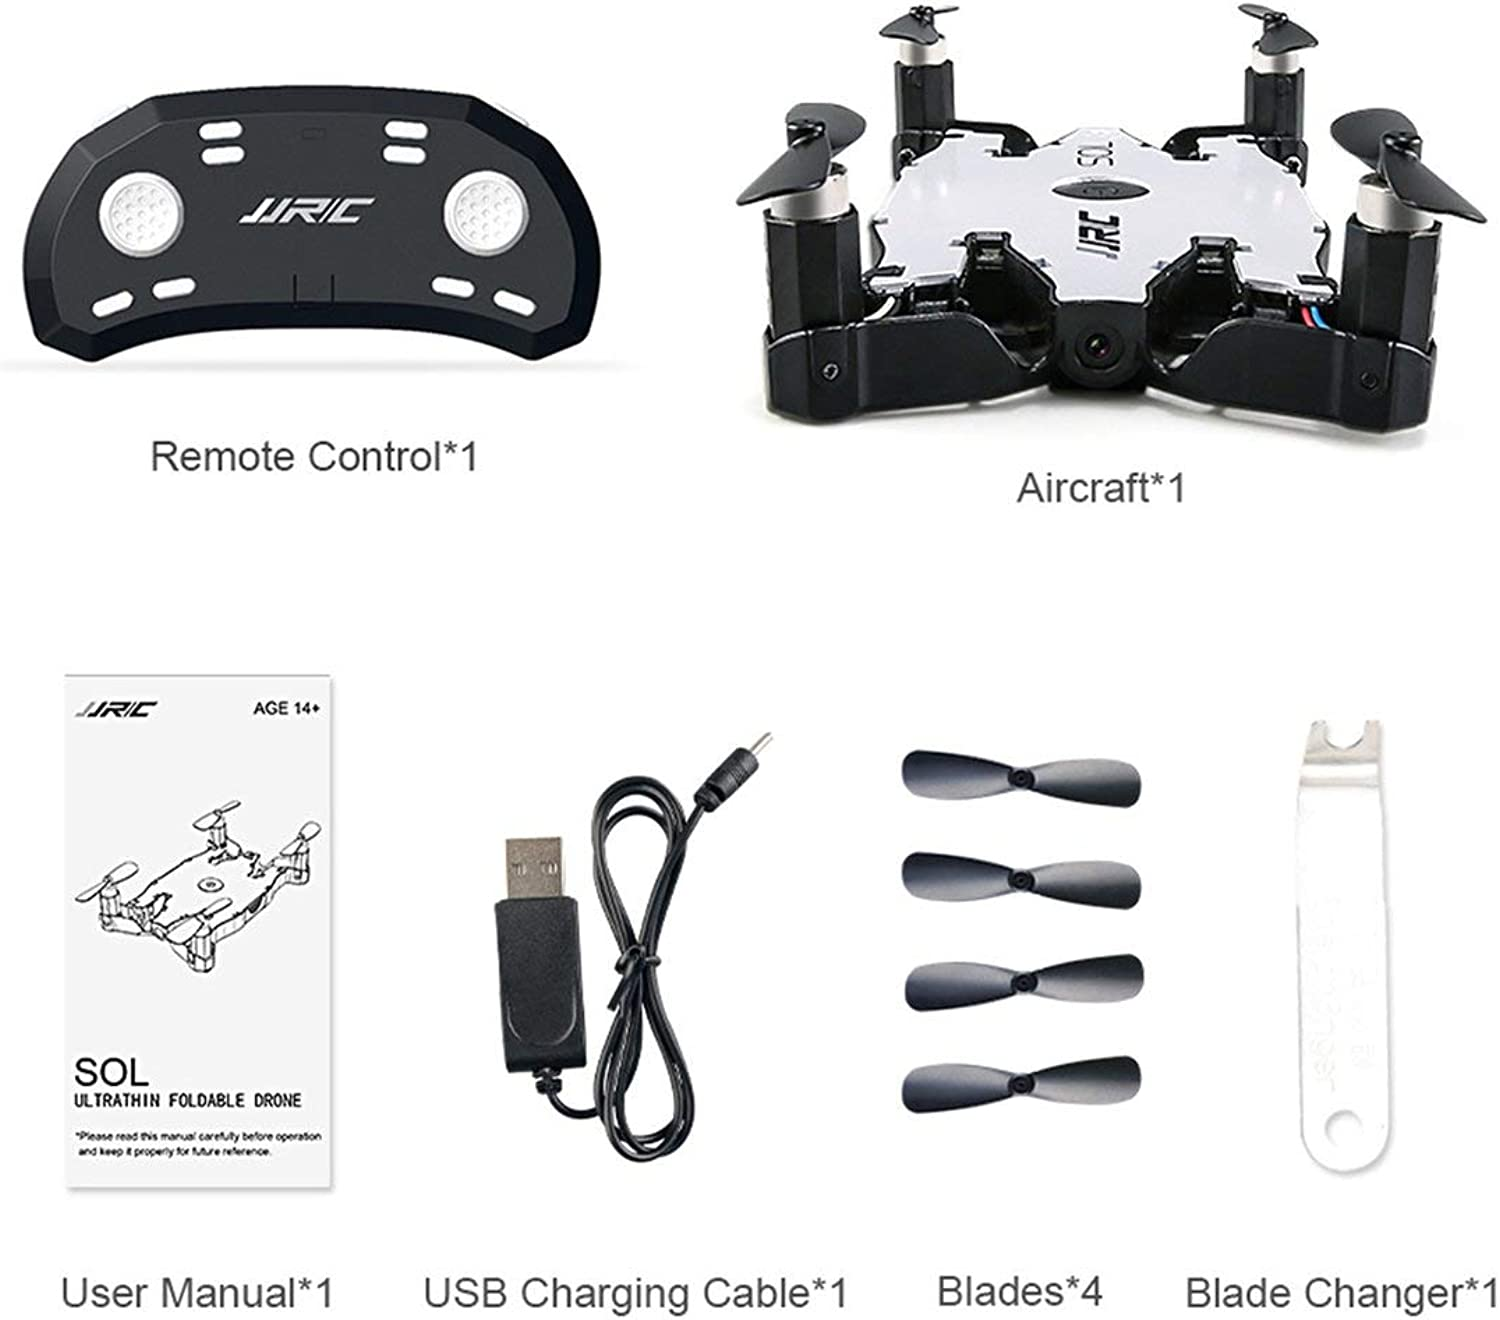 Anyilon for Jjr C H49 2 4Ghz Ultra Thin Foldable Quadcopter Drone with WiFi FPV 720P Hd Live Video Camera Altitude Hold 360° Flips